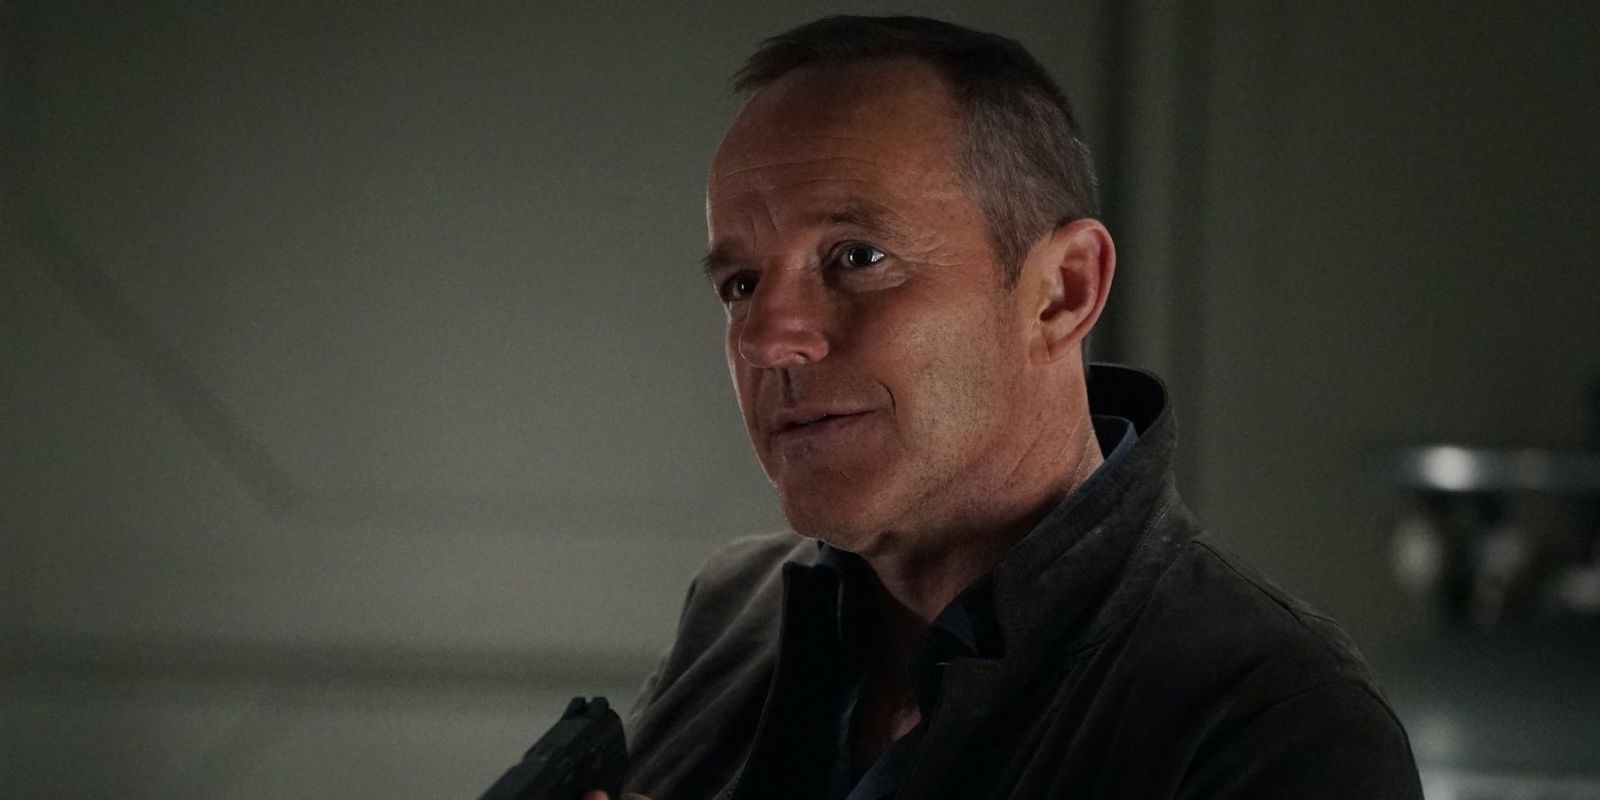 Agents of SHIELD season 6: Everything you need to know